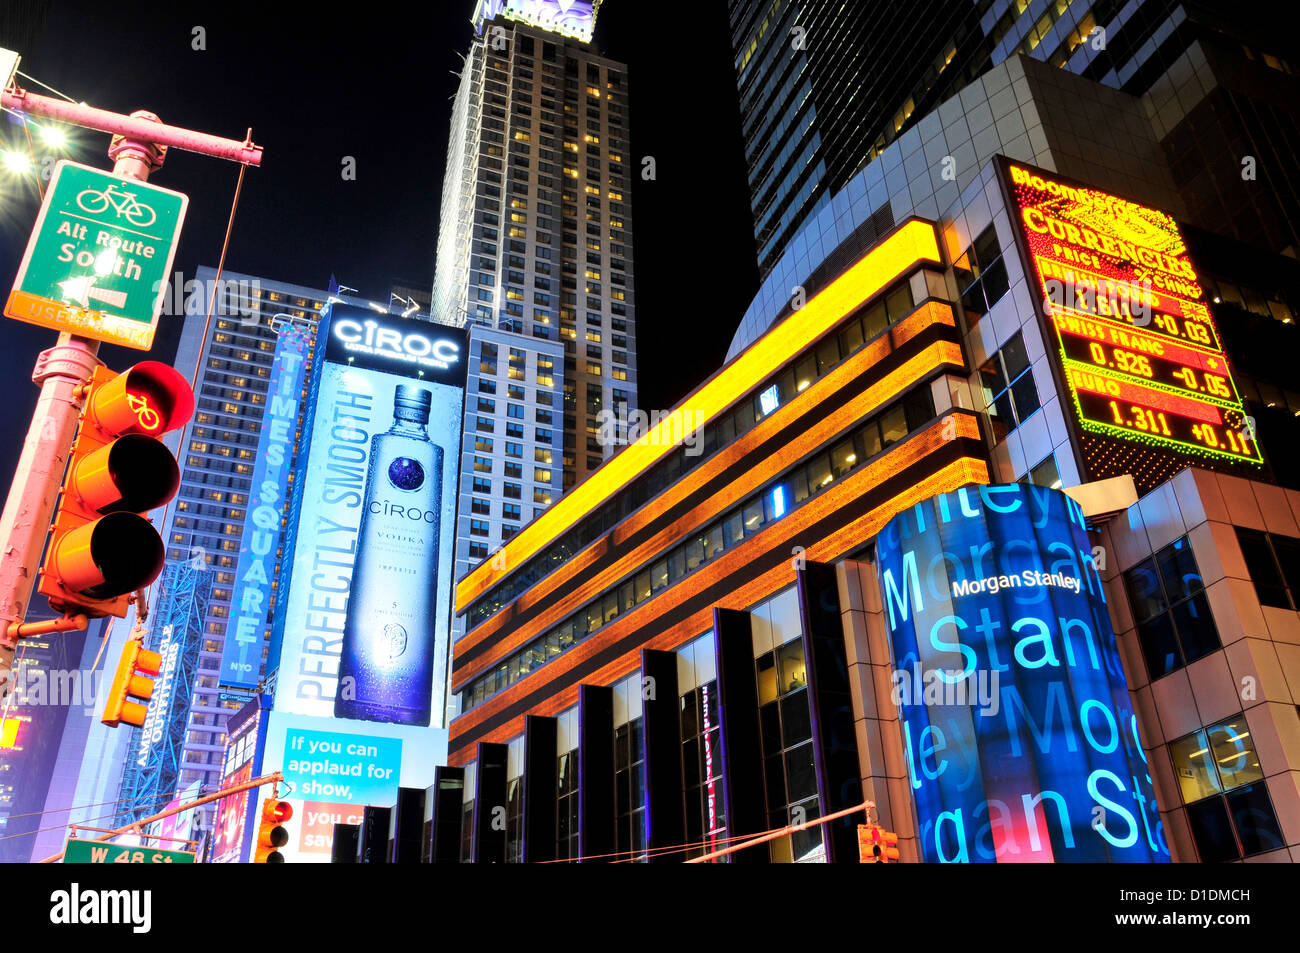 morgan stanley building times square 42nd street new york city stock photo royalty free. Black Bedroom Furniture Sets. Home Design Ideas